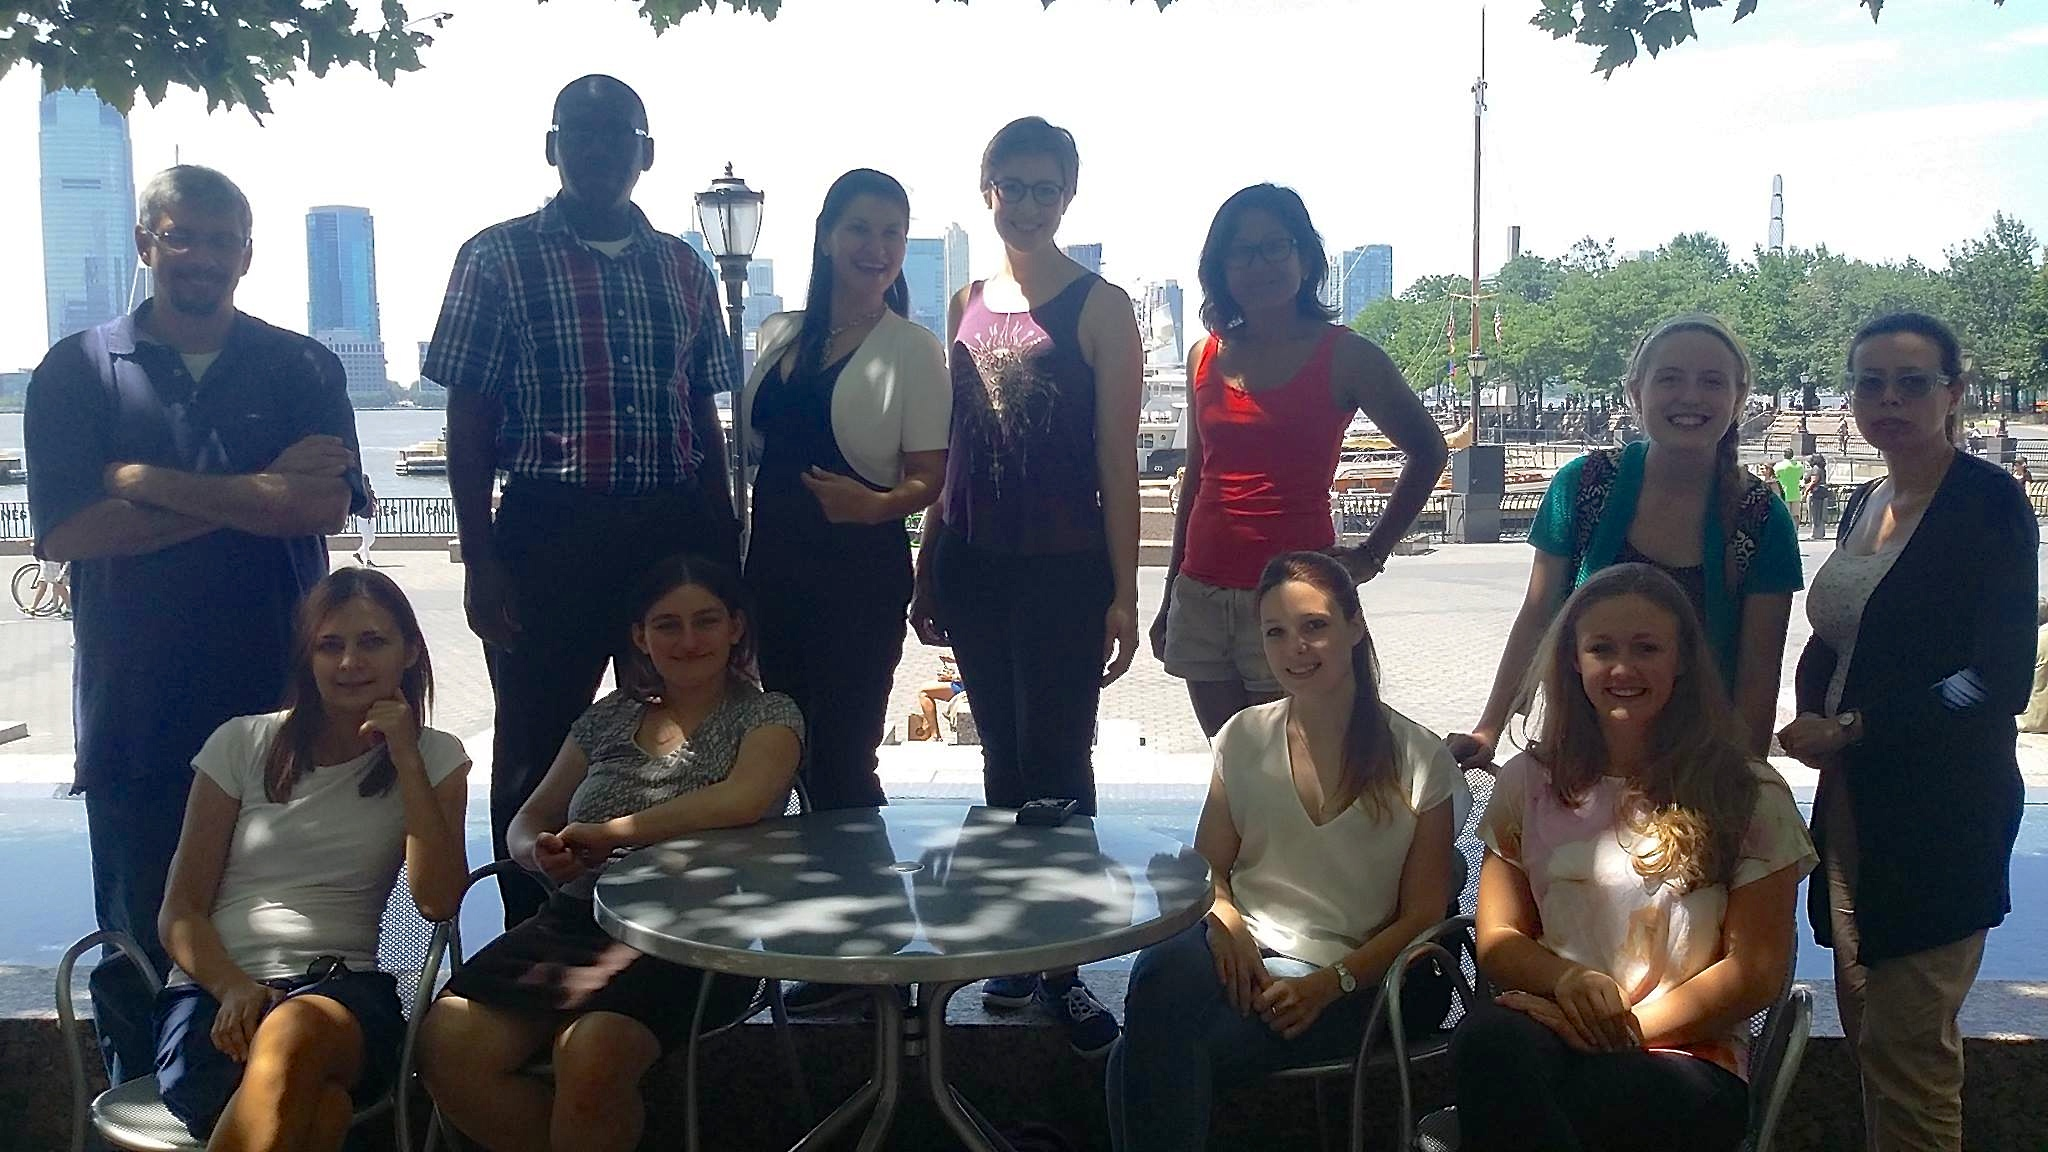 Summer school students and Ana Lita enjoy each others company near the One World Trade Center on a beautiful day